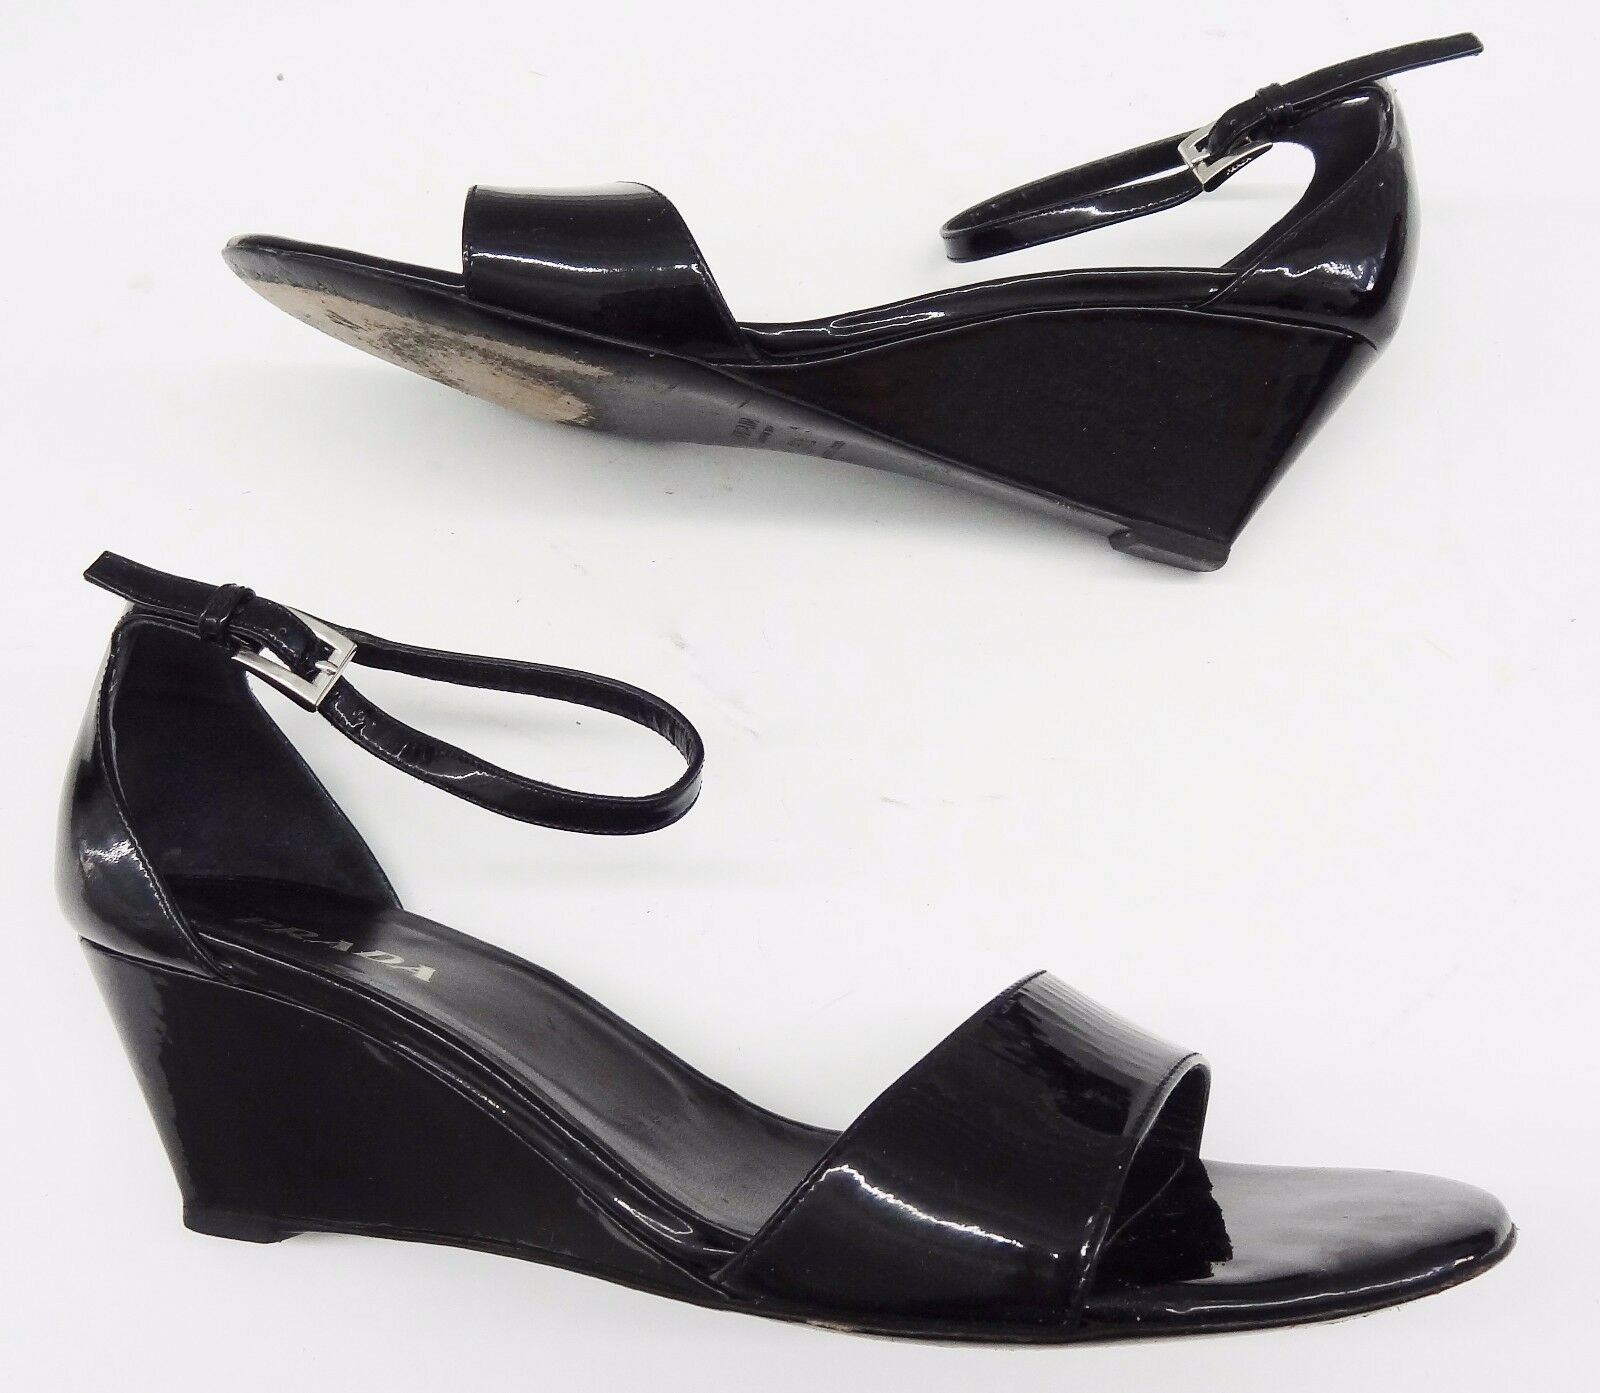 595 PRADA heels Black Patent Leather Ankle Strap Wedge  Sandals 38.5   8.5